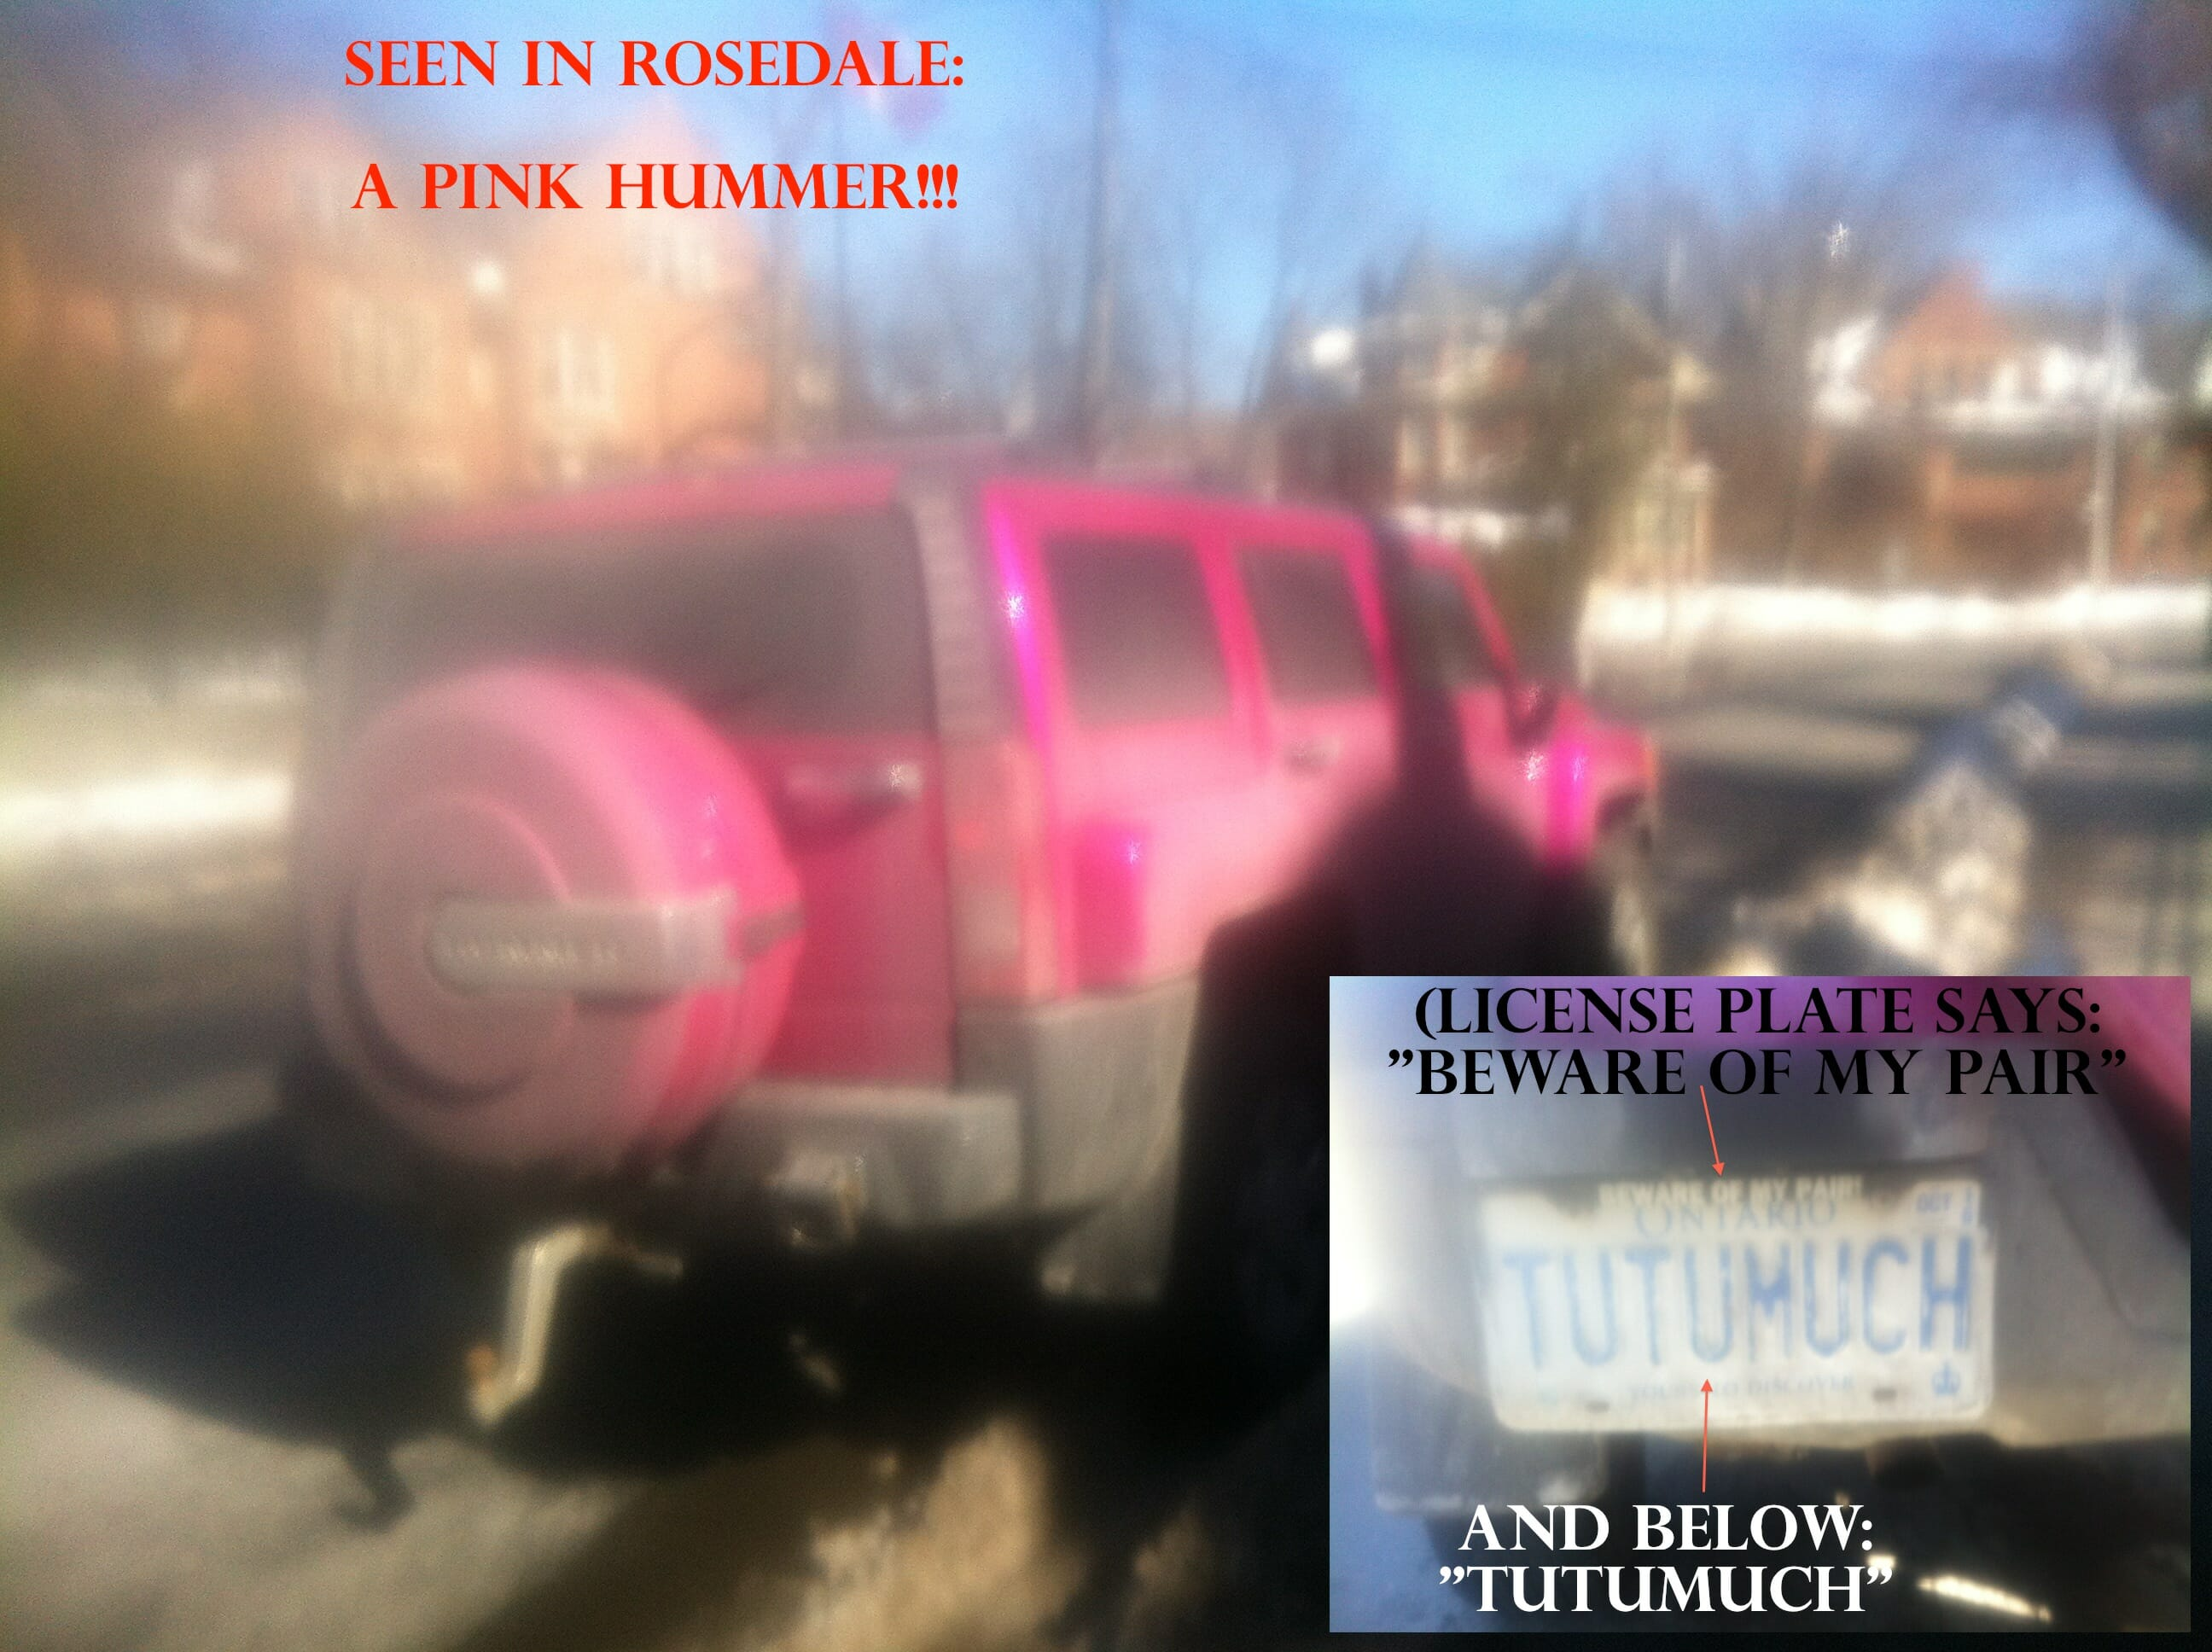 Ovarian Cysts, Ovarian Cancer, & a Pink Hummer in Rosedale